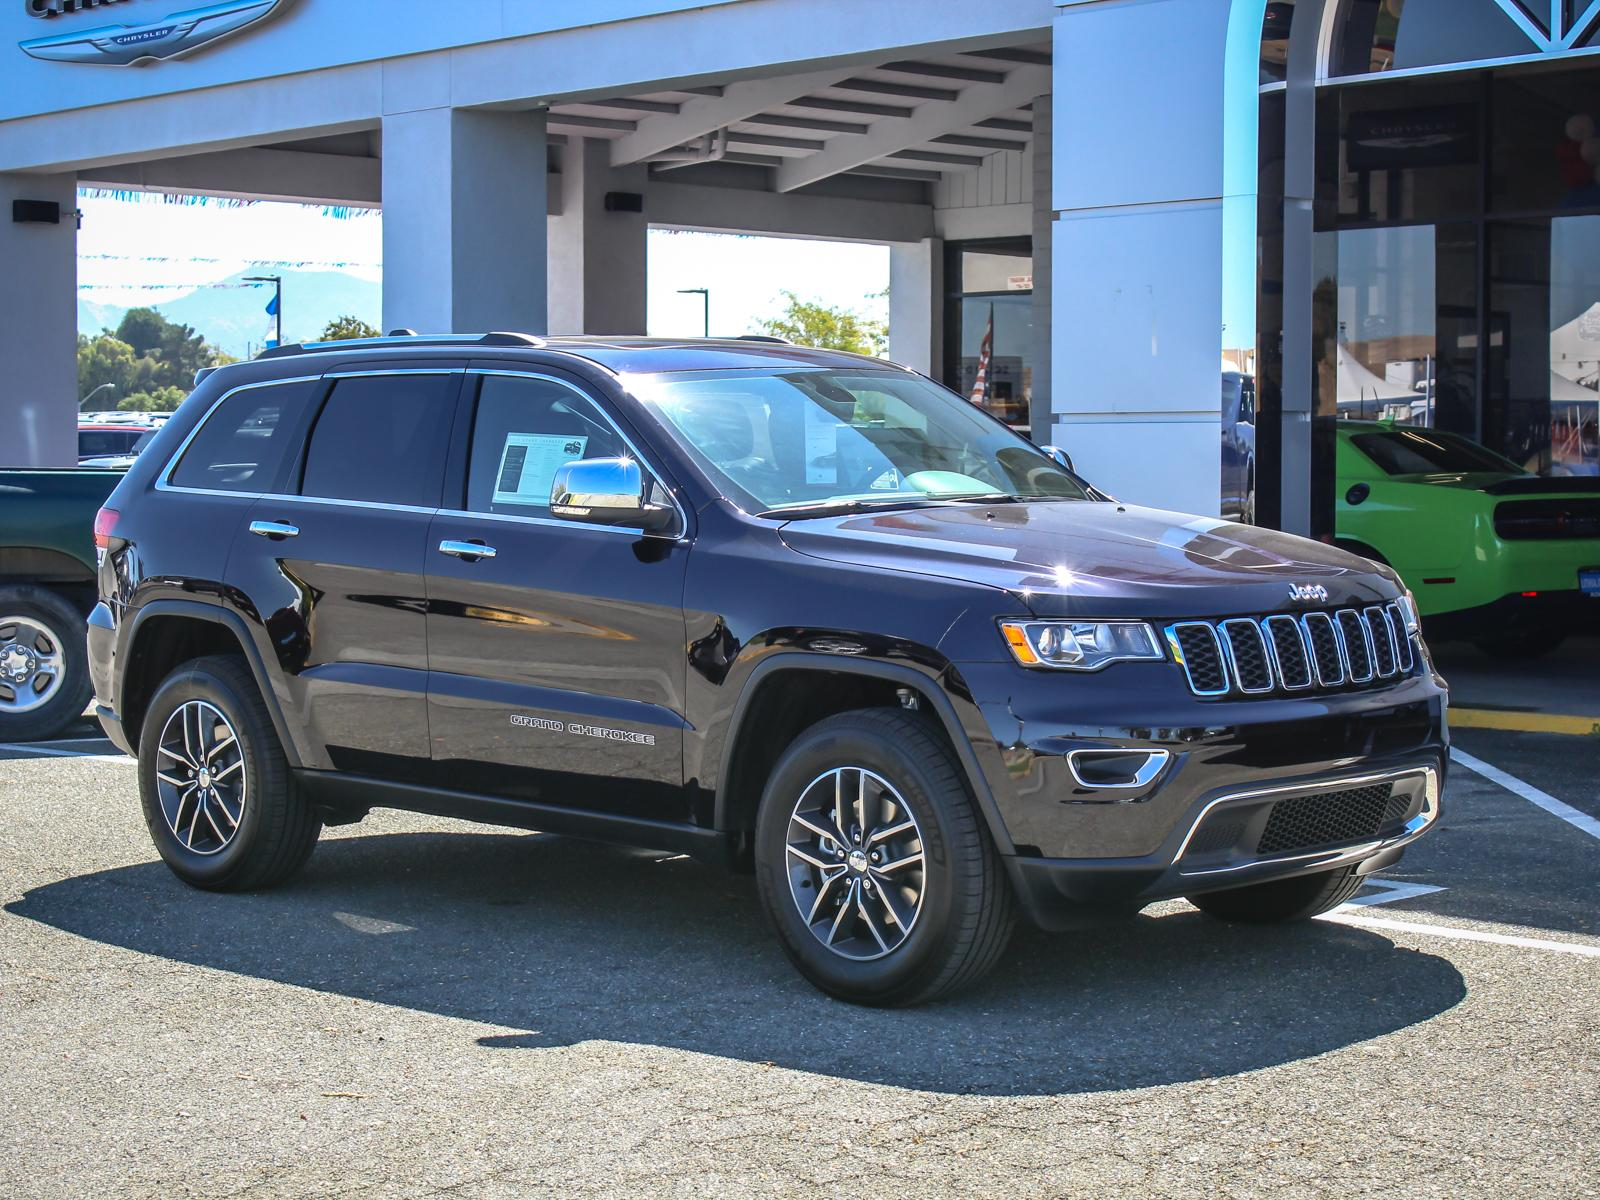 New 2018 Jeep Grand Cherokee Limited 4x4 Sport Utility Sangria For Towing Wire Harness Hook Up Sale In Concord Stockjc436084